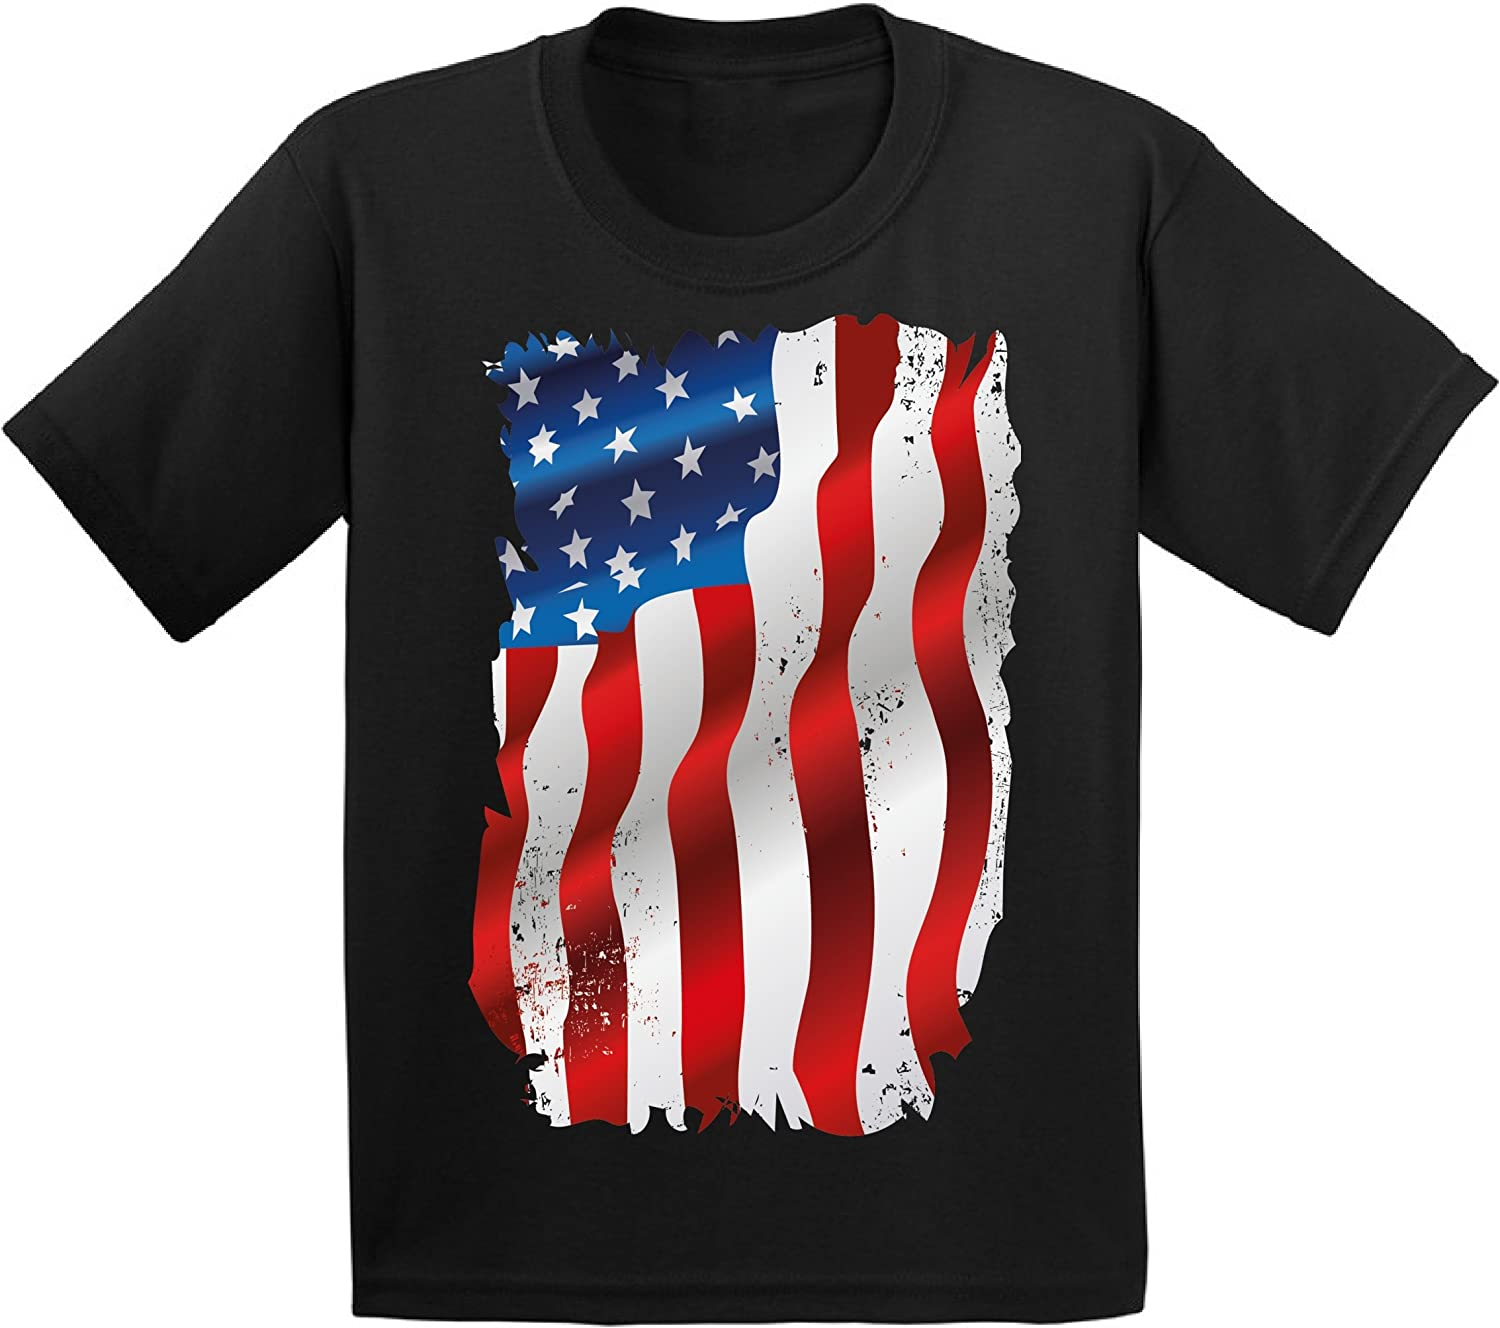 American Flag distressed Heart 4th of July T-shirt USA Pride Shirt Toddler Youth